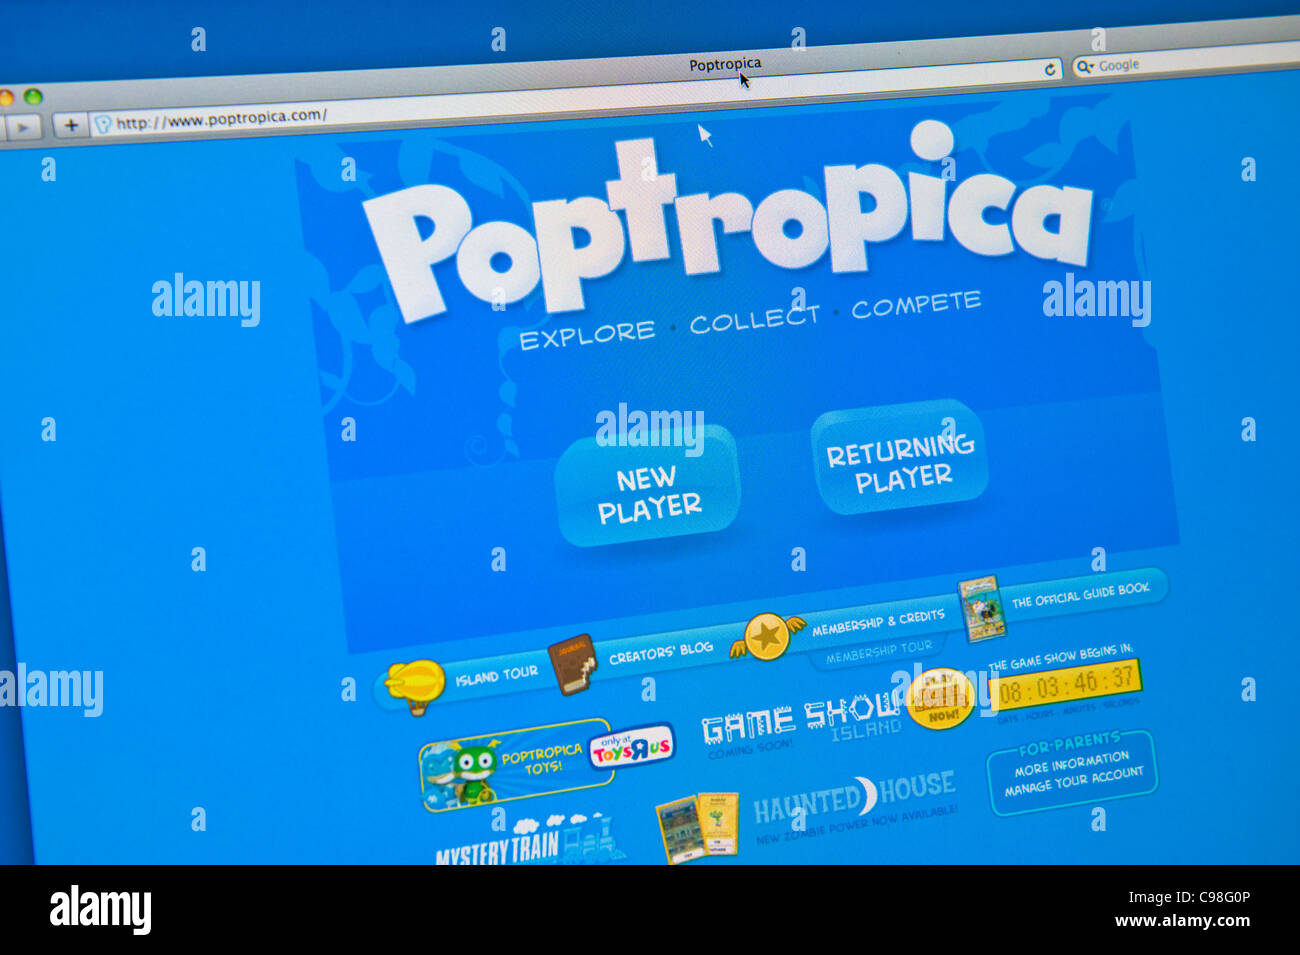 Internet website for poptropica.com a virtual world for children by Family Education Network - Stock Image